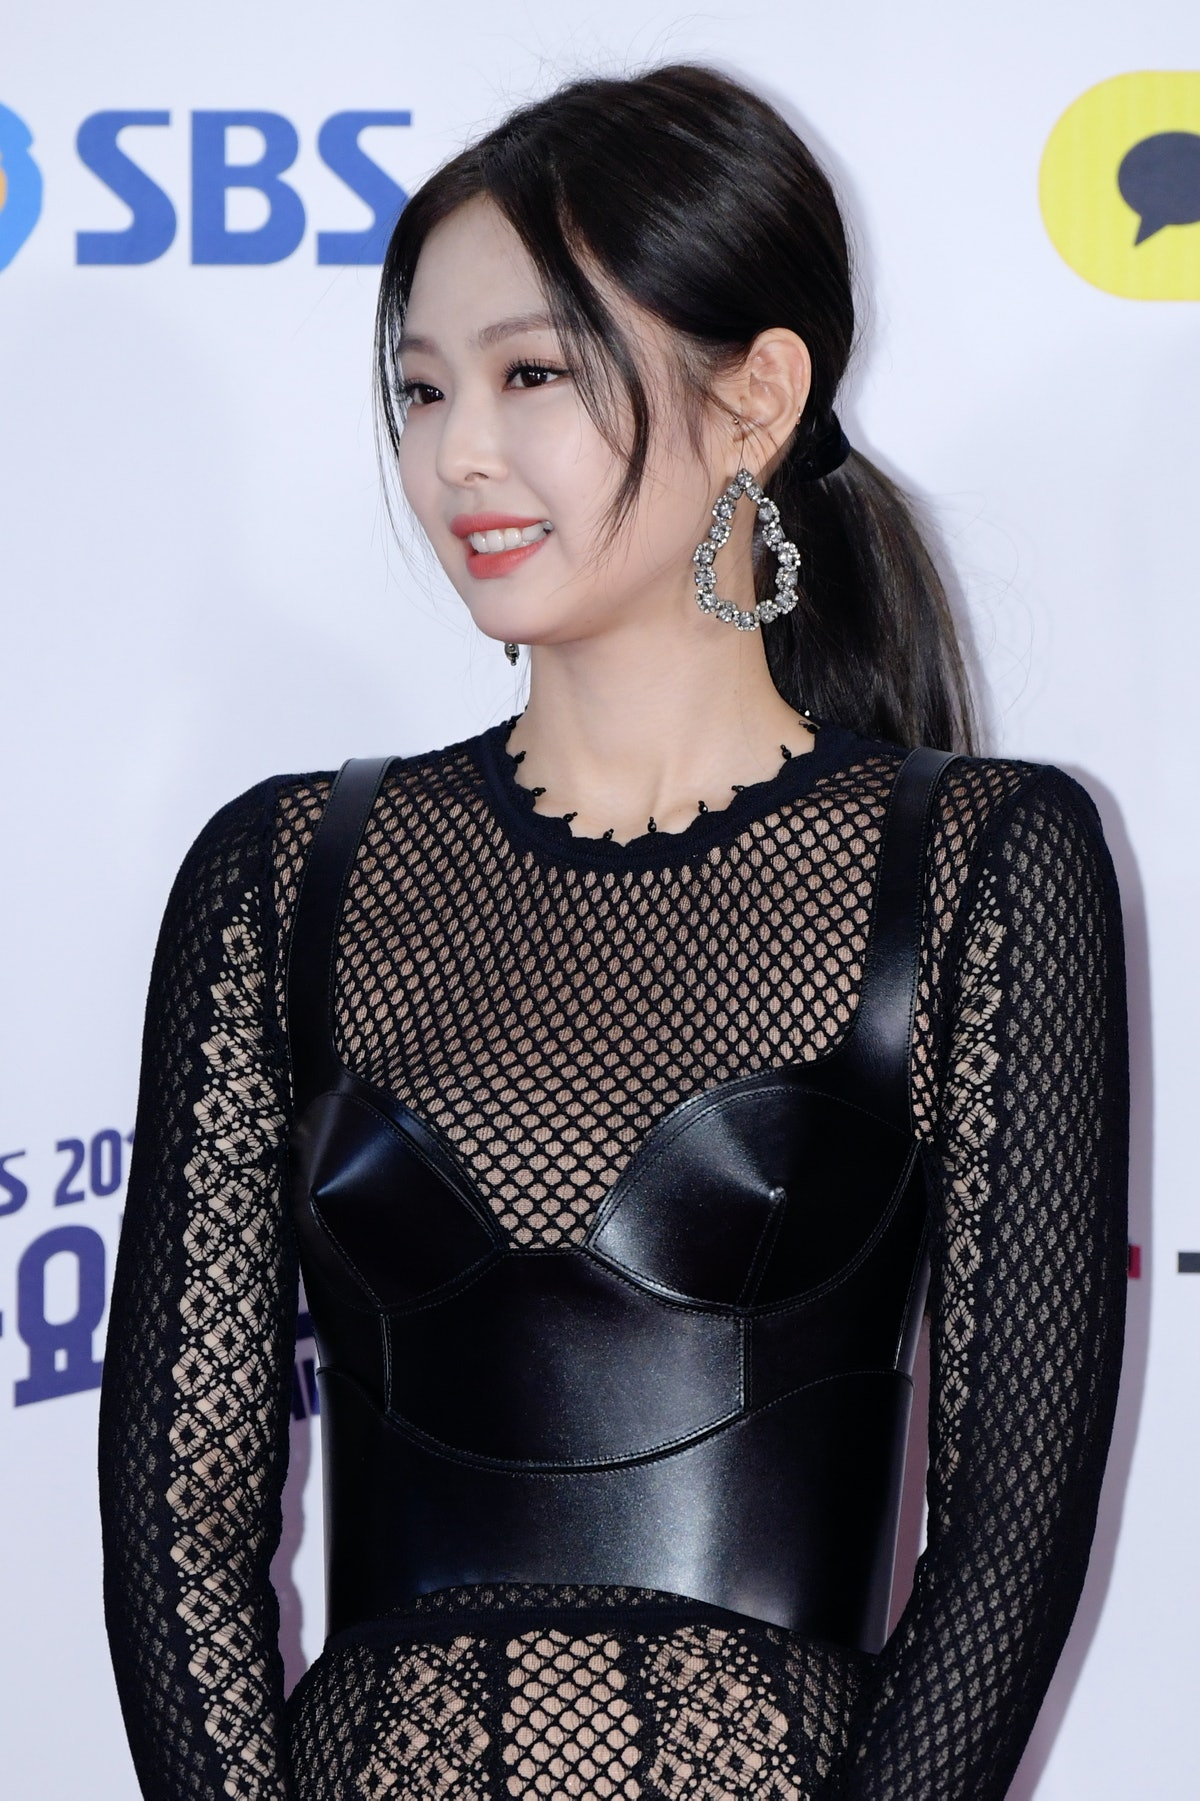 Jennie from BLACKPINK hits the red carpet.